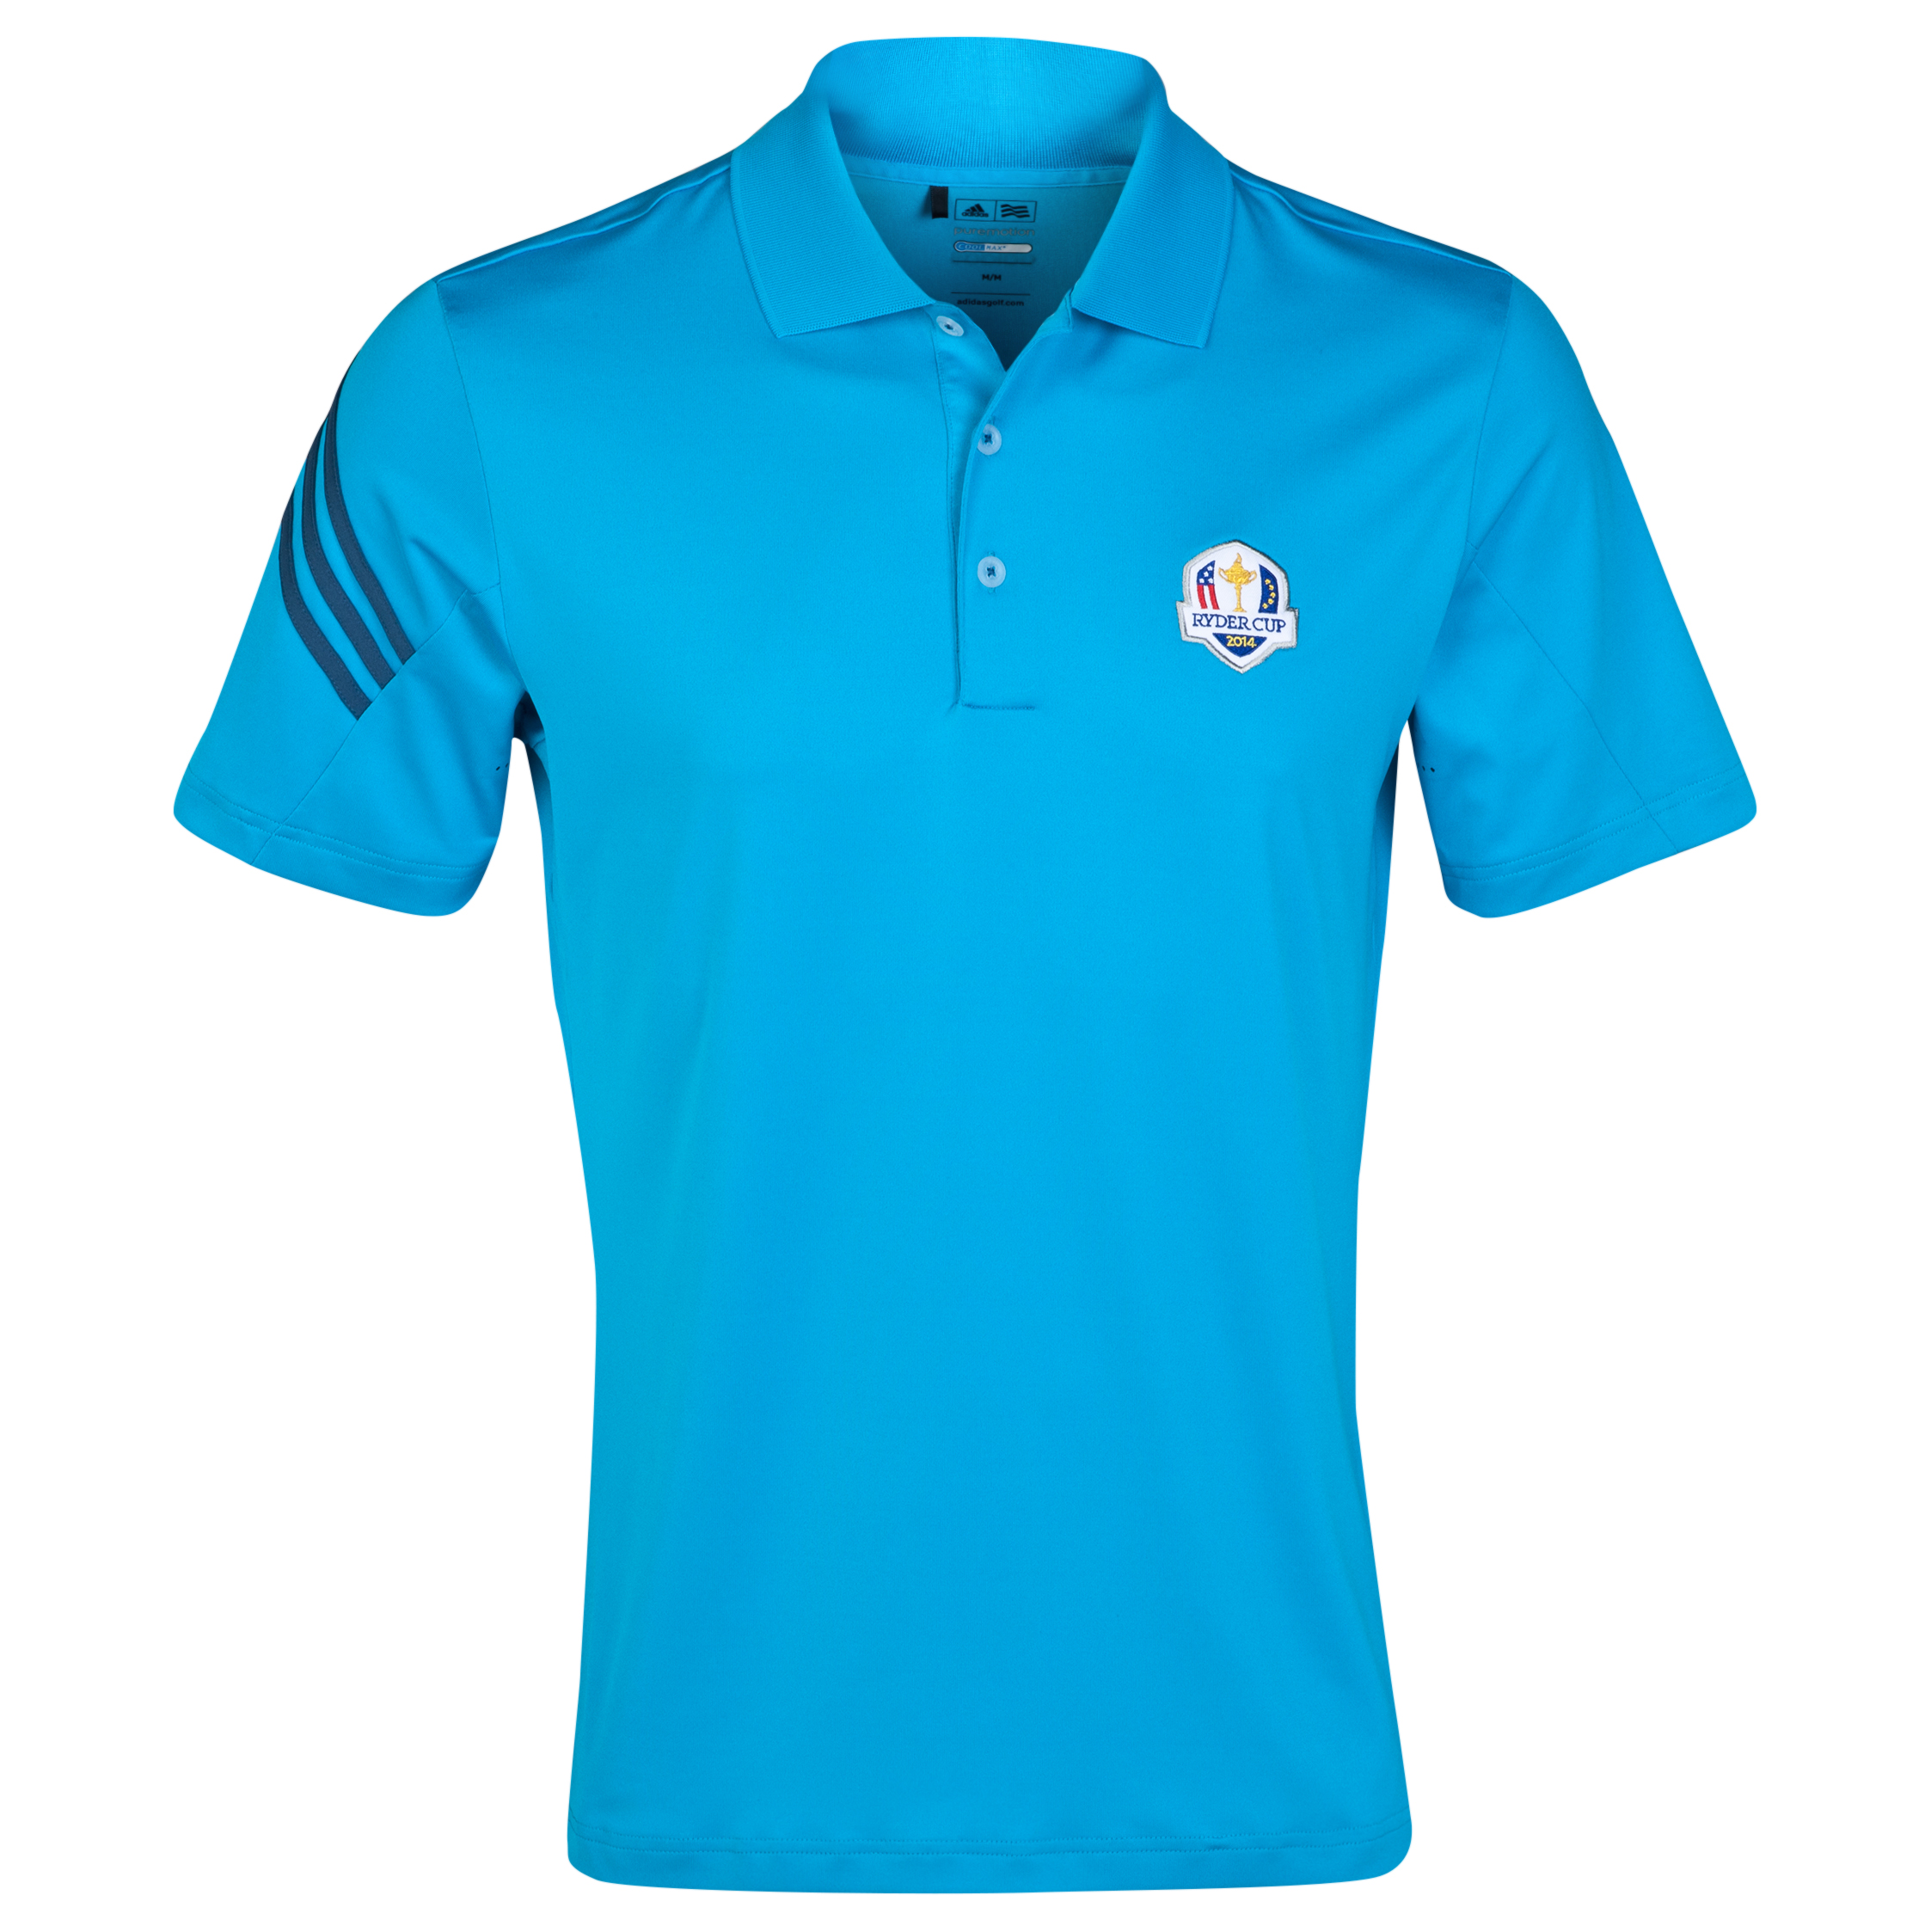 The 2014 Ryder Cup adidas ClimaLite 3-Stripes Polo Sky Blue